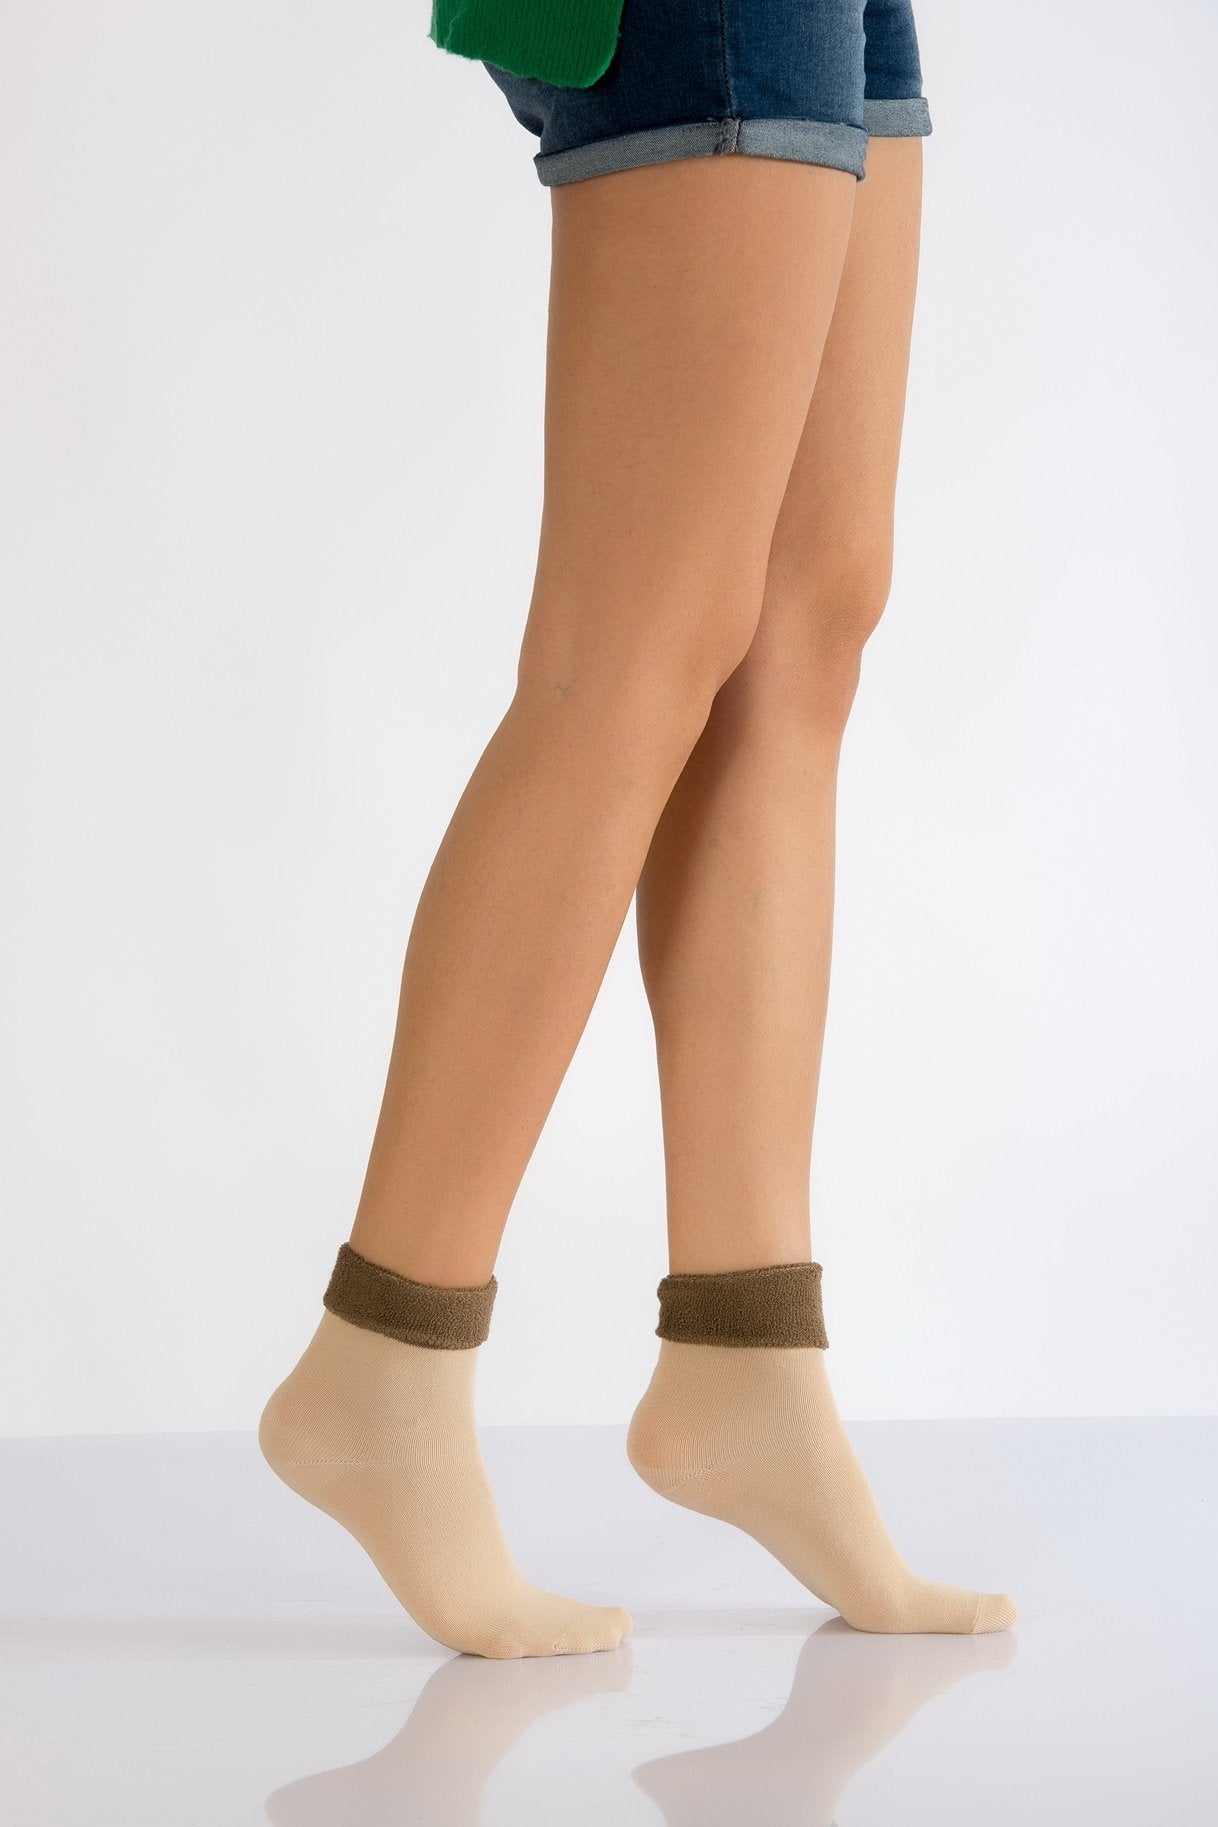 Women's Beige Boot Socket Socks- 3 Pairs